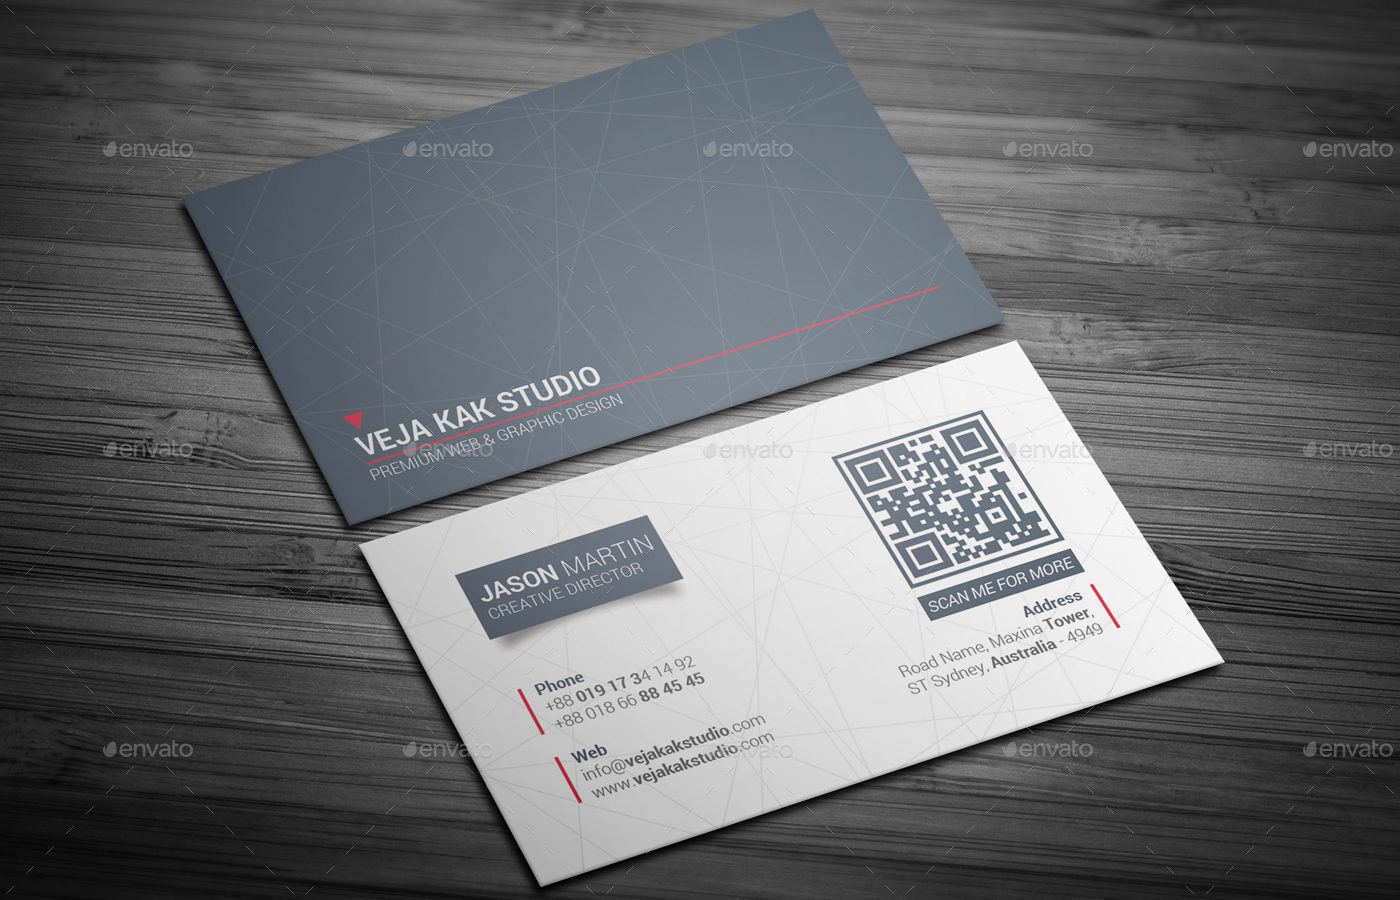 Sleek Minimal Business Card By Vejakakstudio GraphicRiver - Web design business cards templates